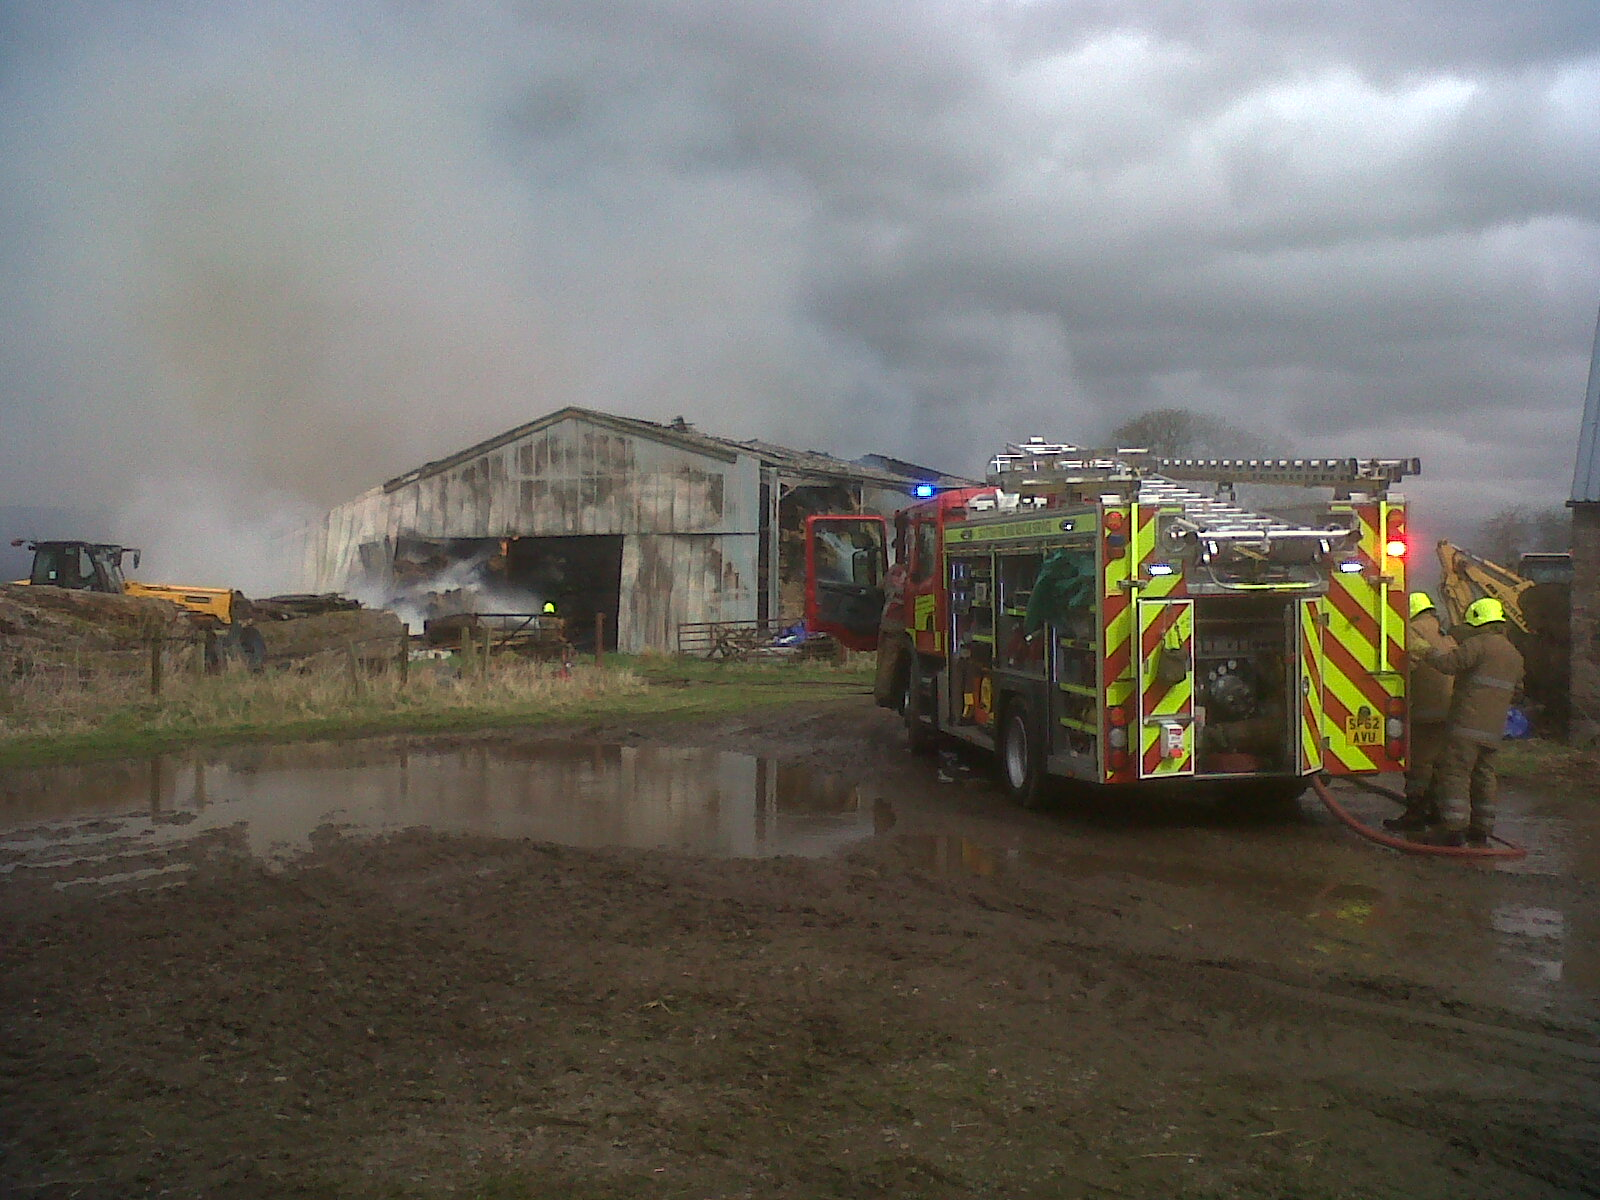 SFRS still at scene of large fire near Perth